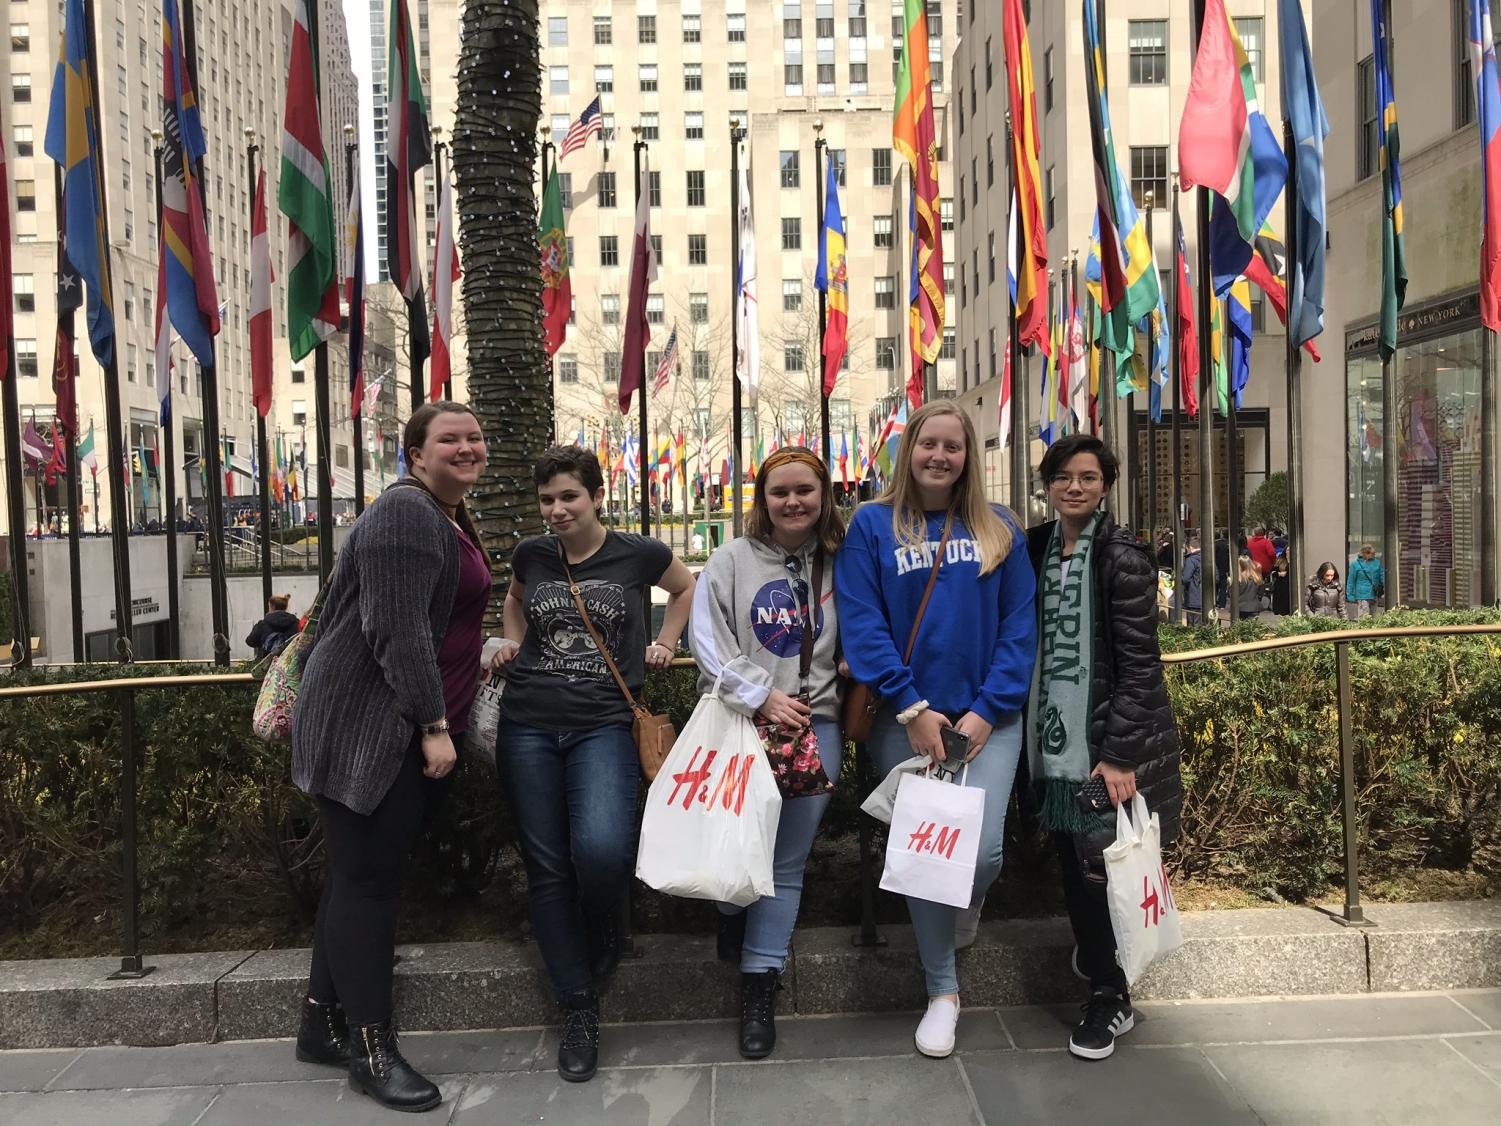 Students+had+time+for+shopping+and+exploring+while+in+NYC+during+spring+break.+